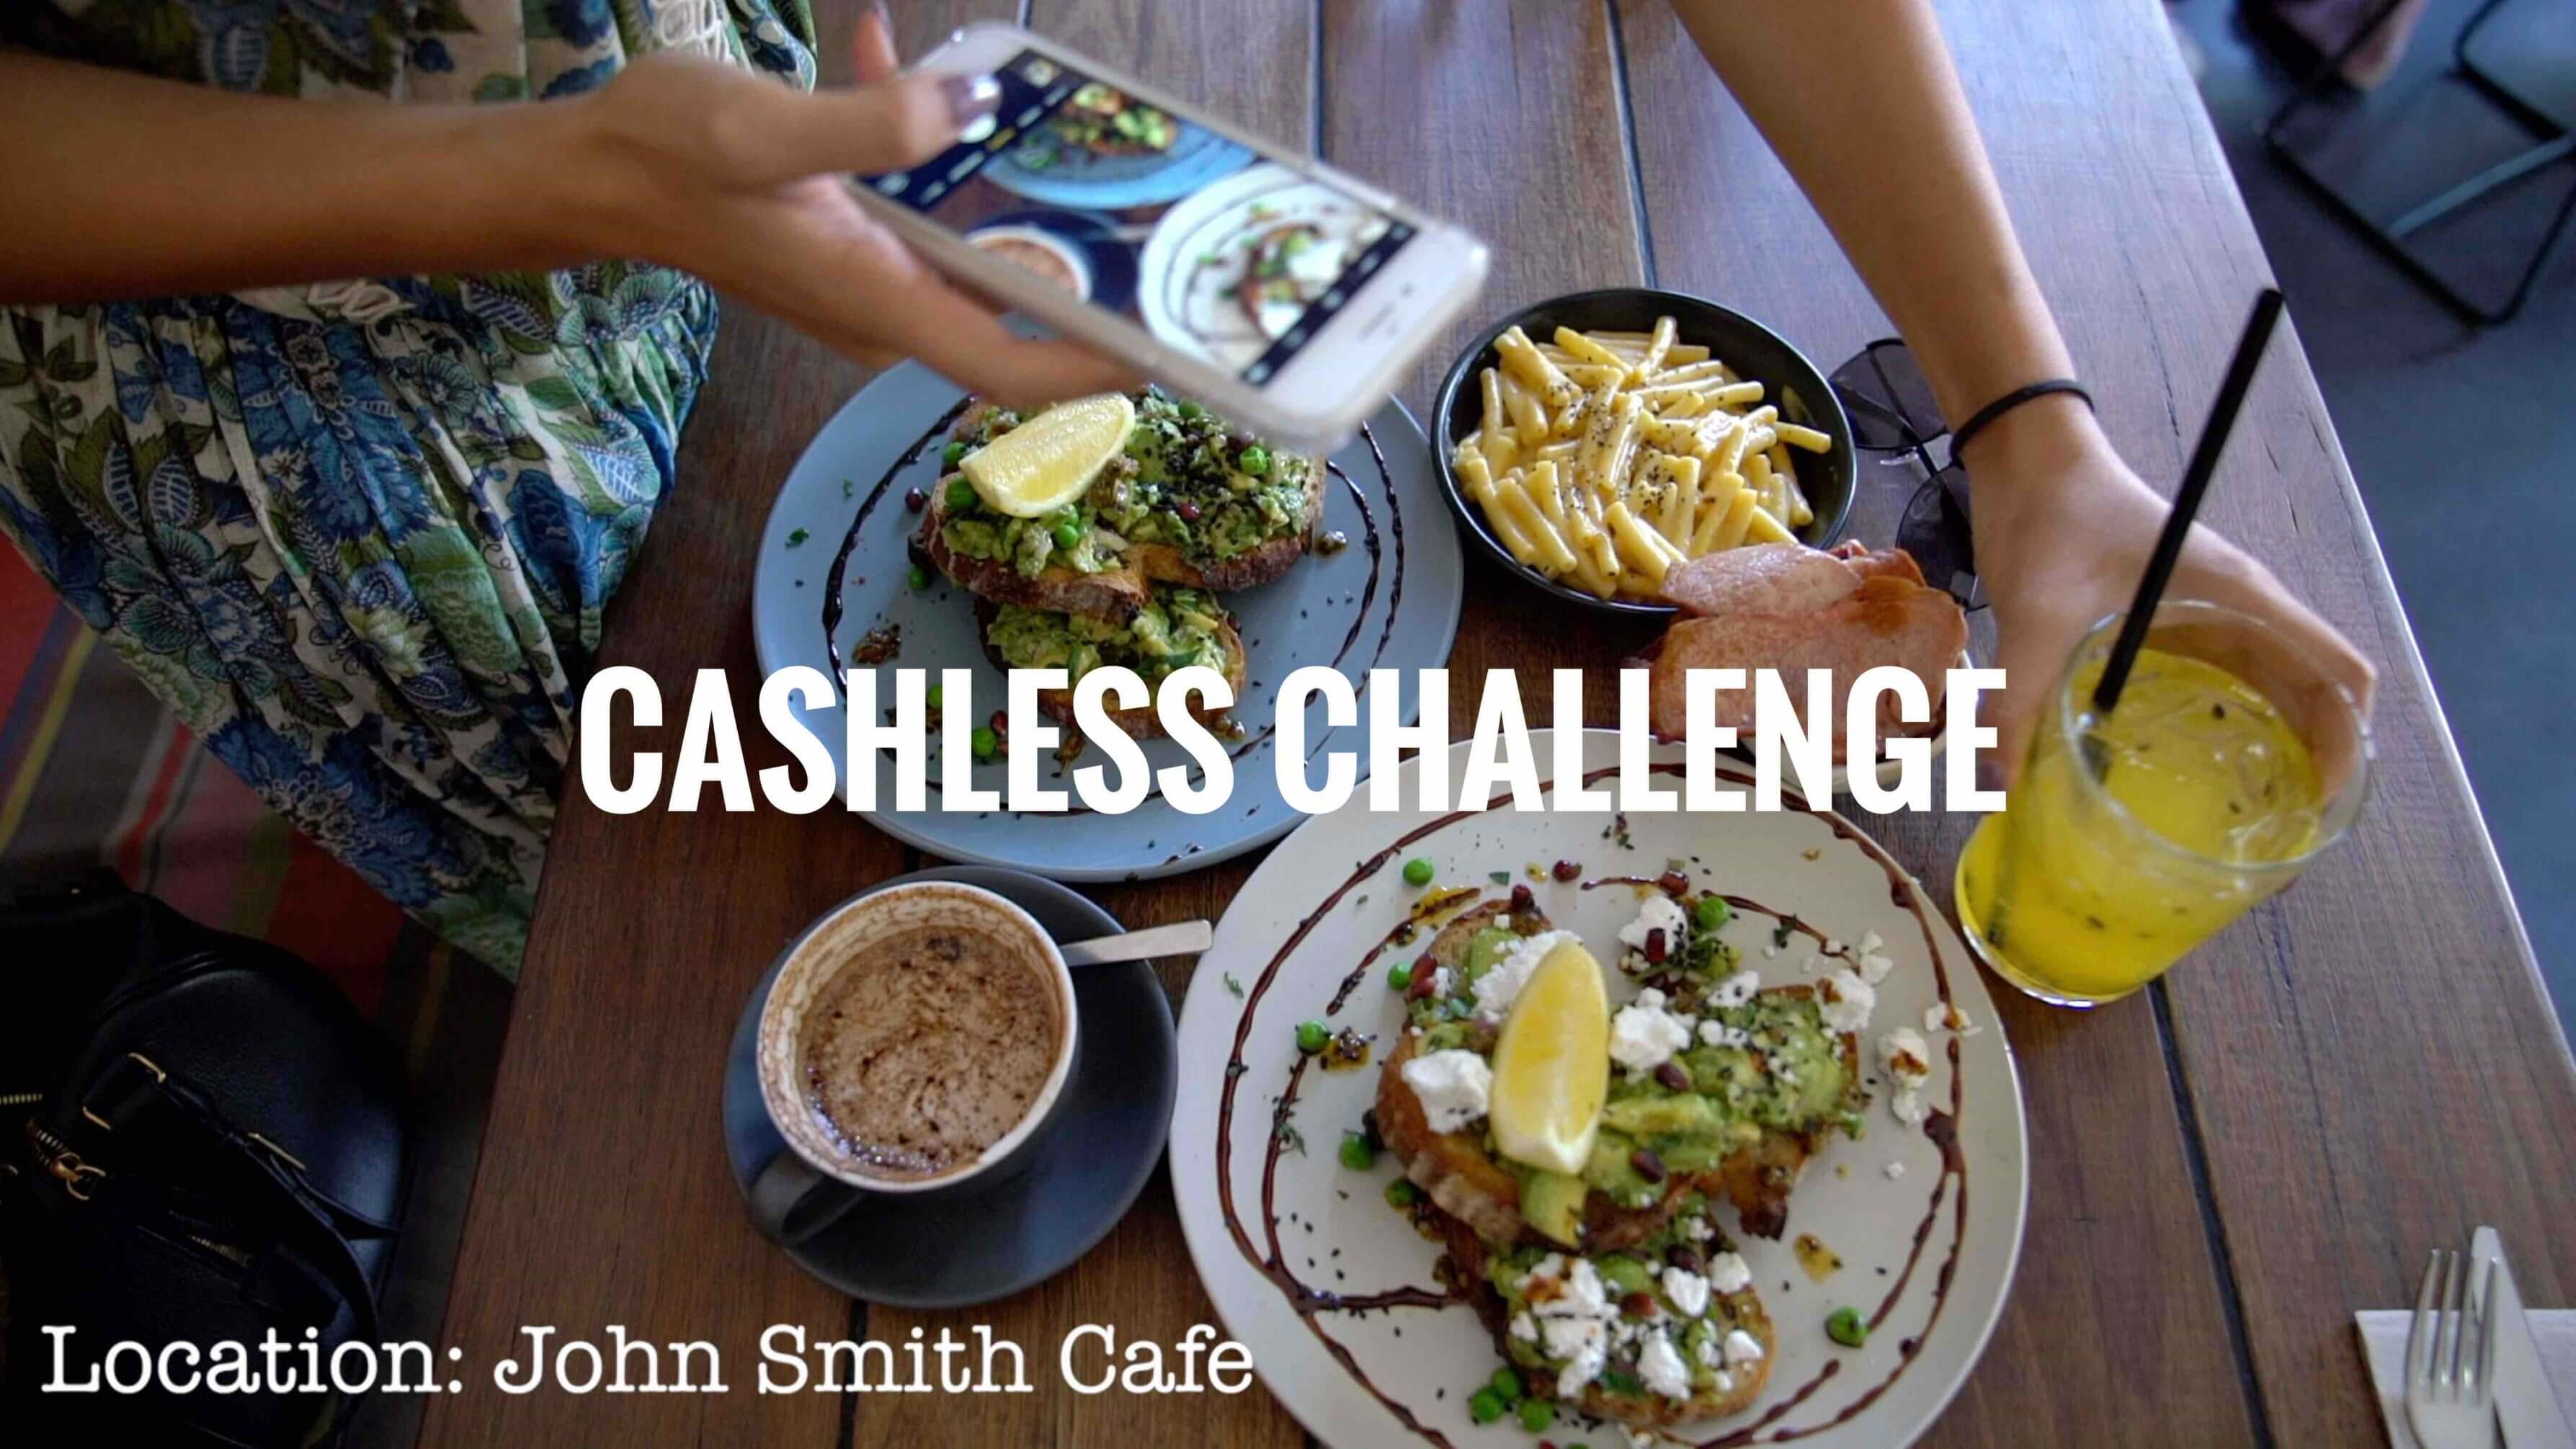 American Express Cashless Challenge